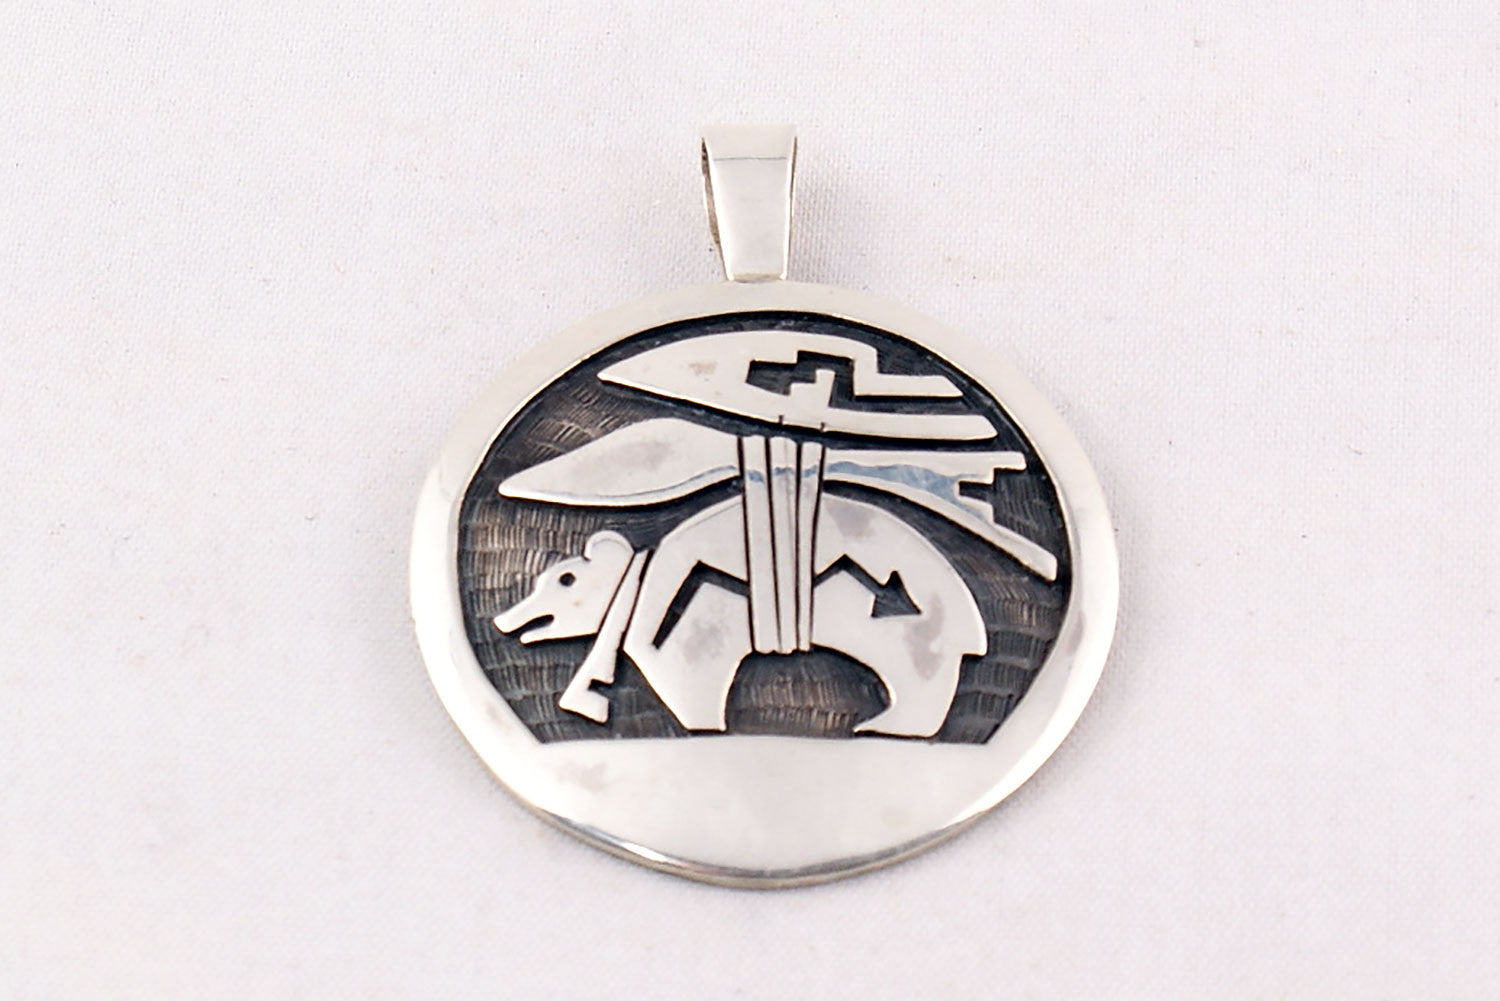 Hopi overlay sterling silver bear pendant by joe josytewa hopi overlay sterling silver bear pendant by joe josytewa turquoise village 1 buycottarizona Gallery